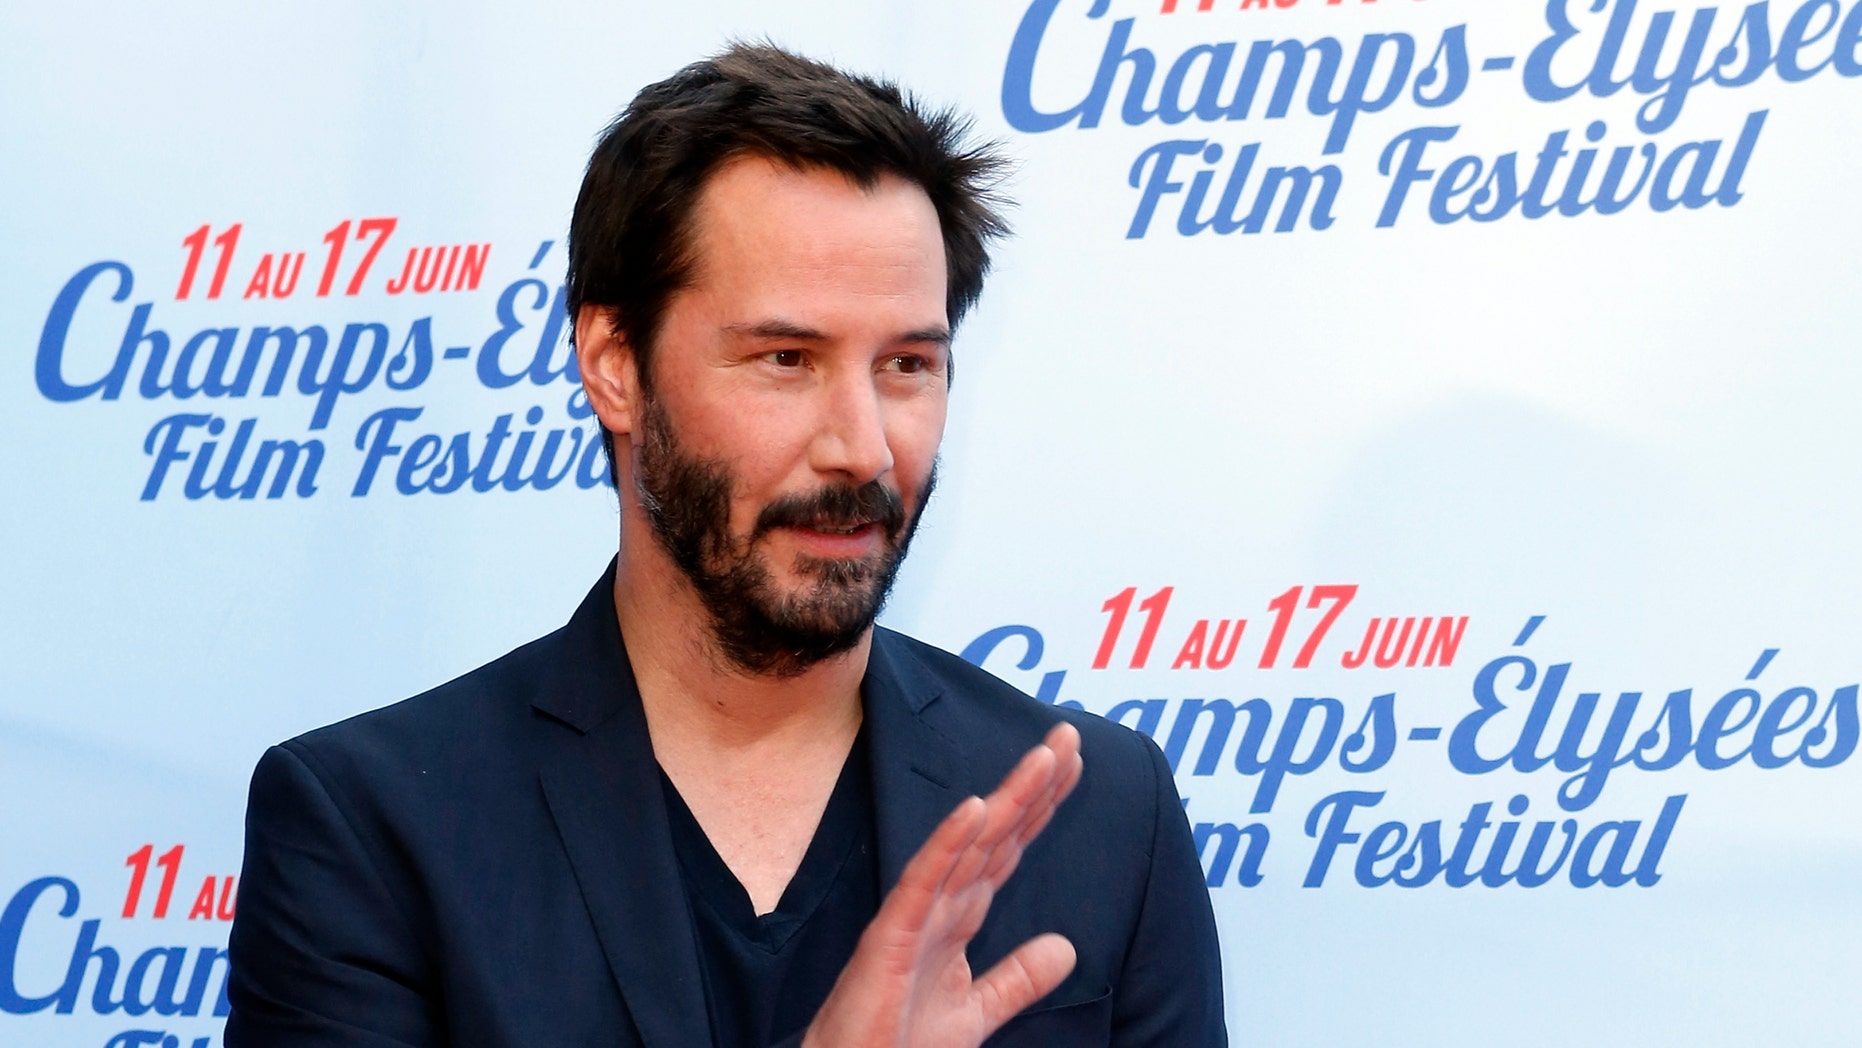 """June 14, 2014. Keanu Reeves waves at the screening of the film """"Side by Side"""" during the Champs-Elysees Film Festival, in Paris."""